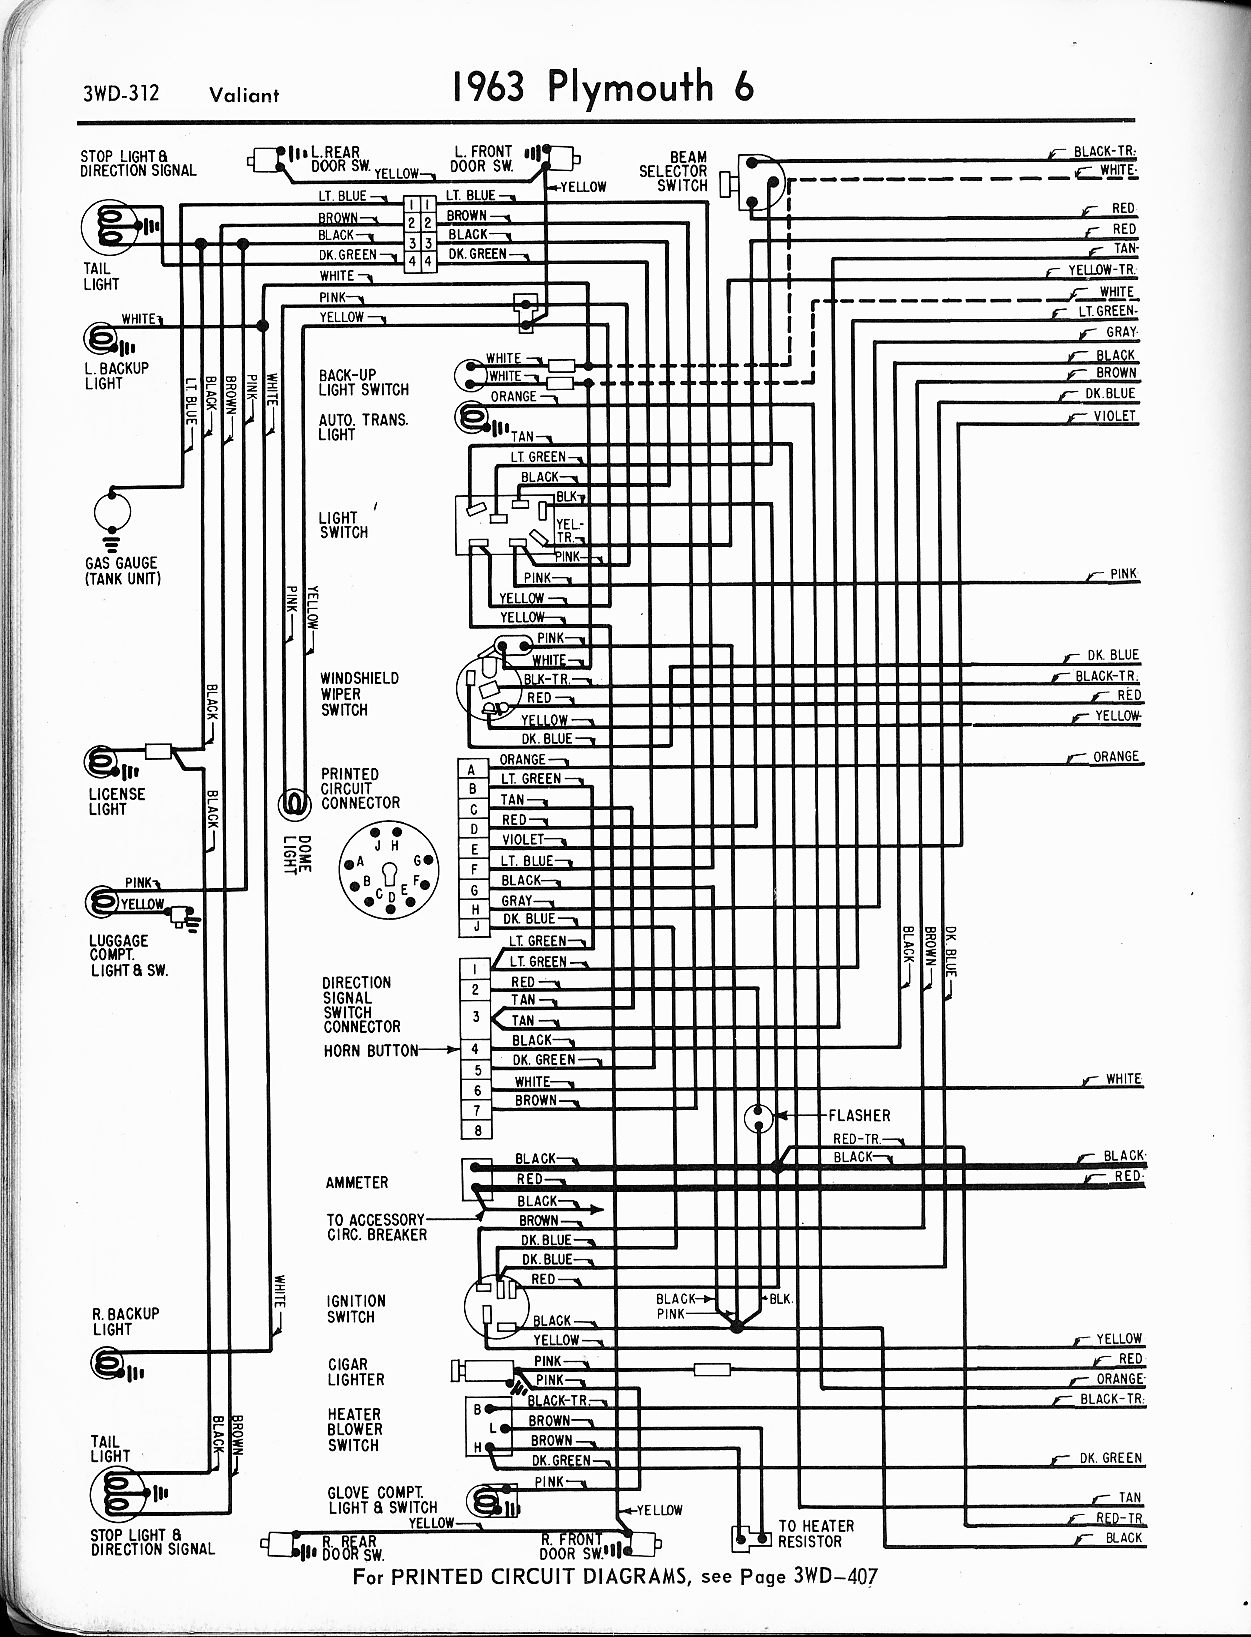 Wiring Diagram For 1966 Fury | Wiring Diagram on bronco speaker, bronco frame diagram, bronco fuse diagram, bronco suspension, bronco exhaust diagram, bronco accessories, bronco distributor, bronco transmission, bronco body diagram, bronco ignition coil, bronco engine diagram, bronco steering, bronco dimensions, bronco drive shaft,